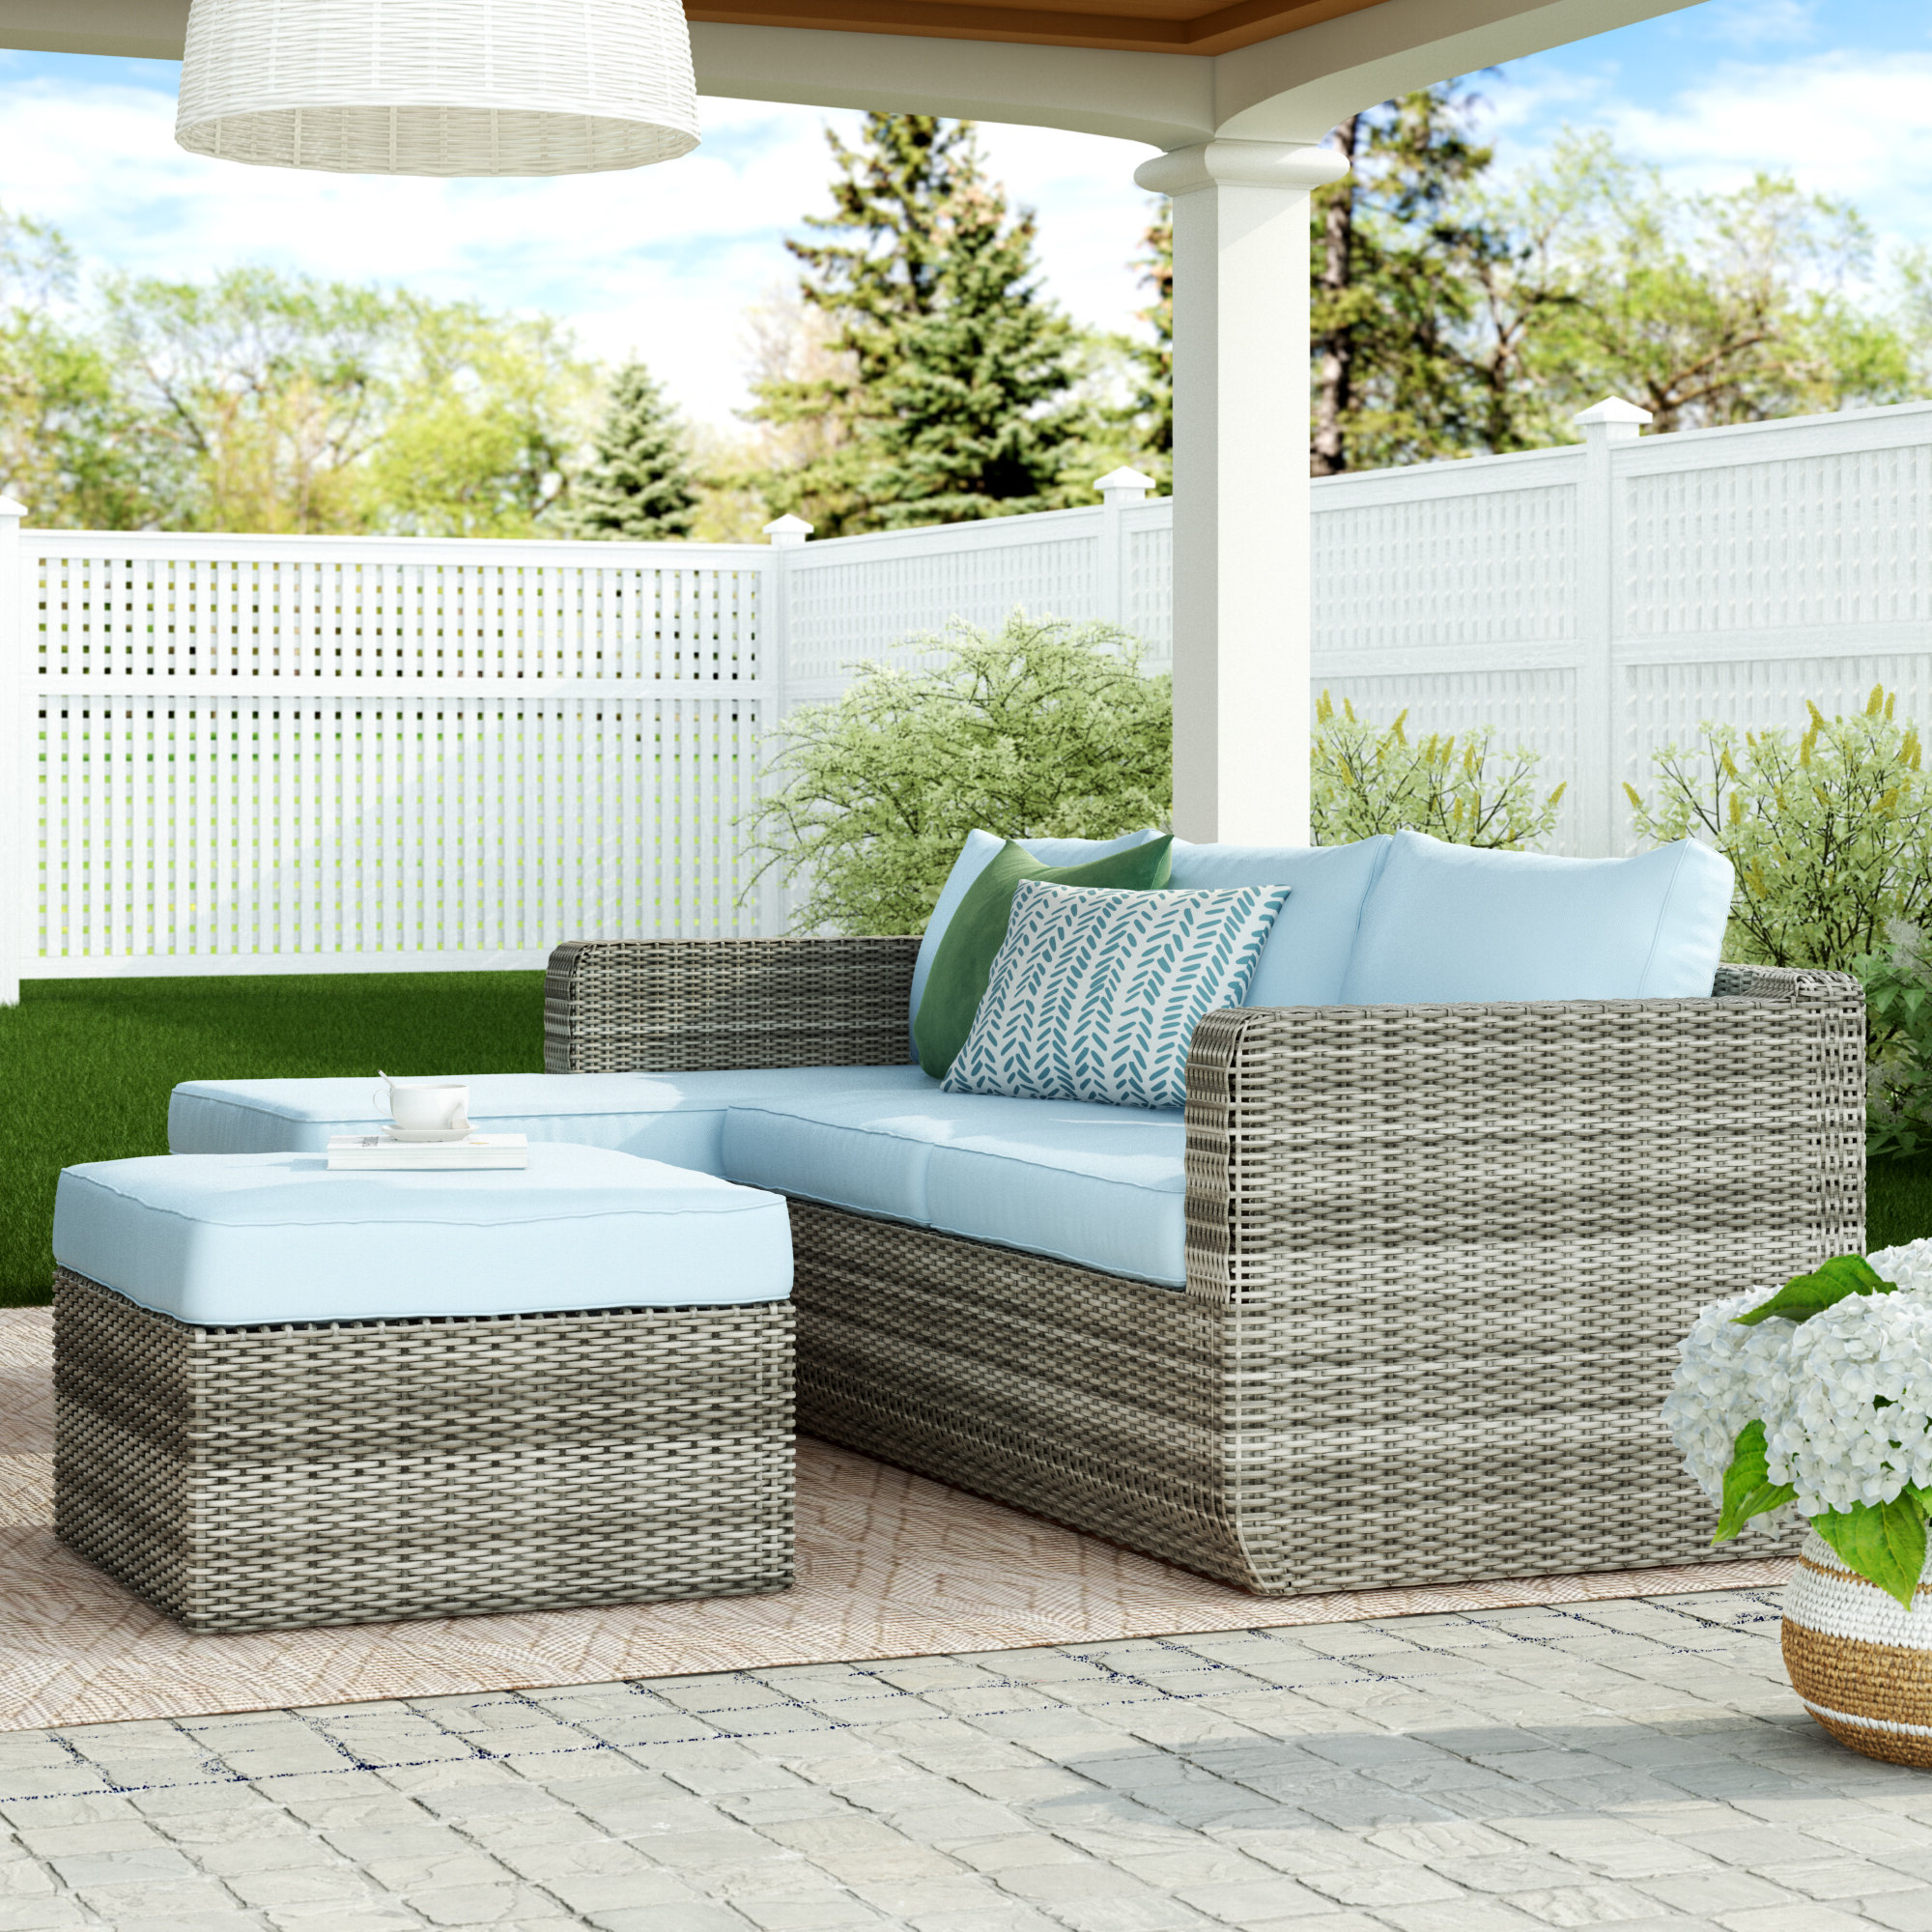 Outdoor Backyard Patio Garden Furniture Decor Glider Bench 2 Inside Popular Outdoor Fabric Glider Benches (View 20 of 30)